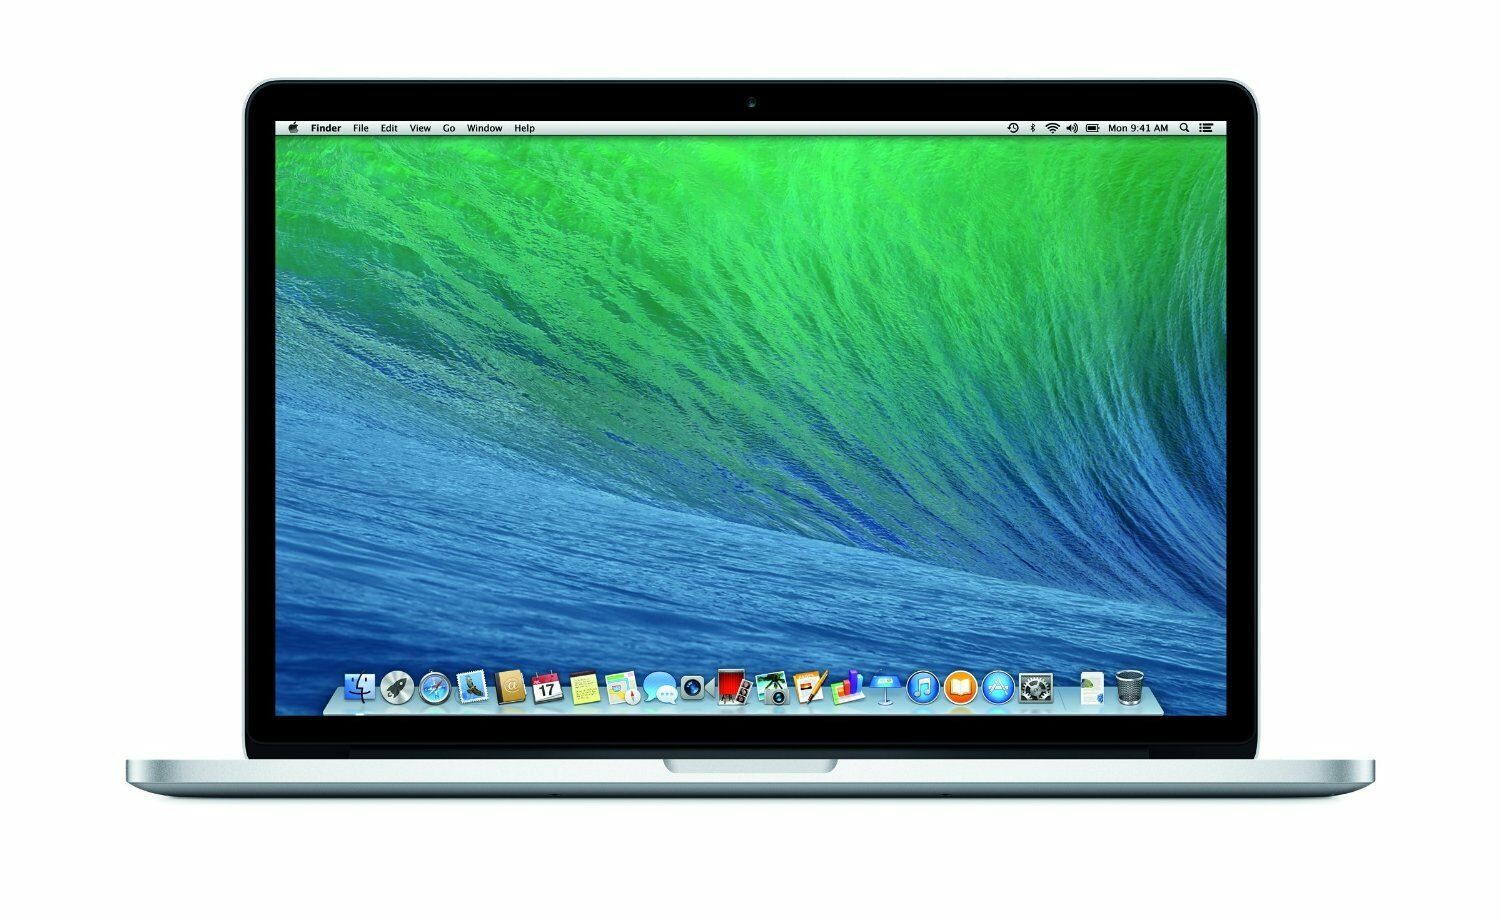 "Apple MacBook Pro 15.4"" Laptop RETINA MGXA2LL/A (2014) - 16GB RAM 256GB SSD"